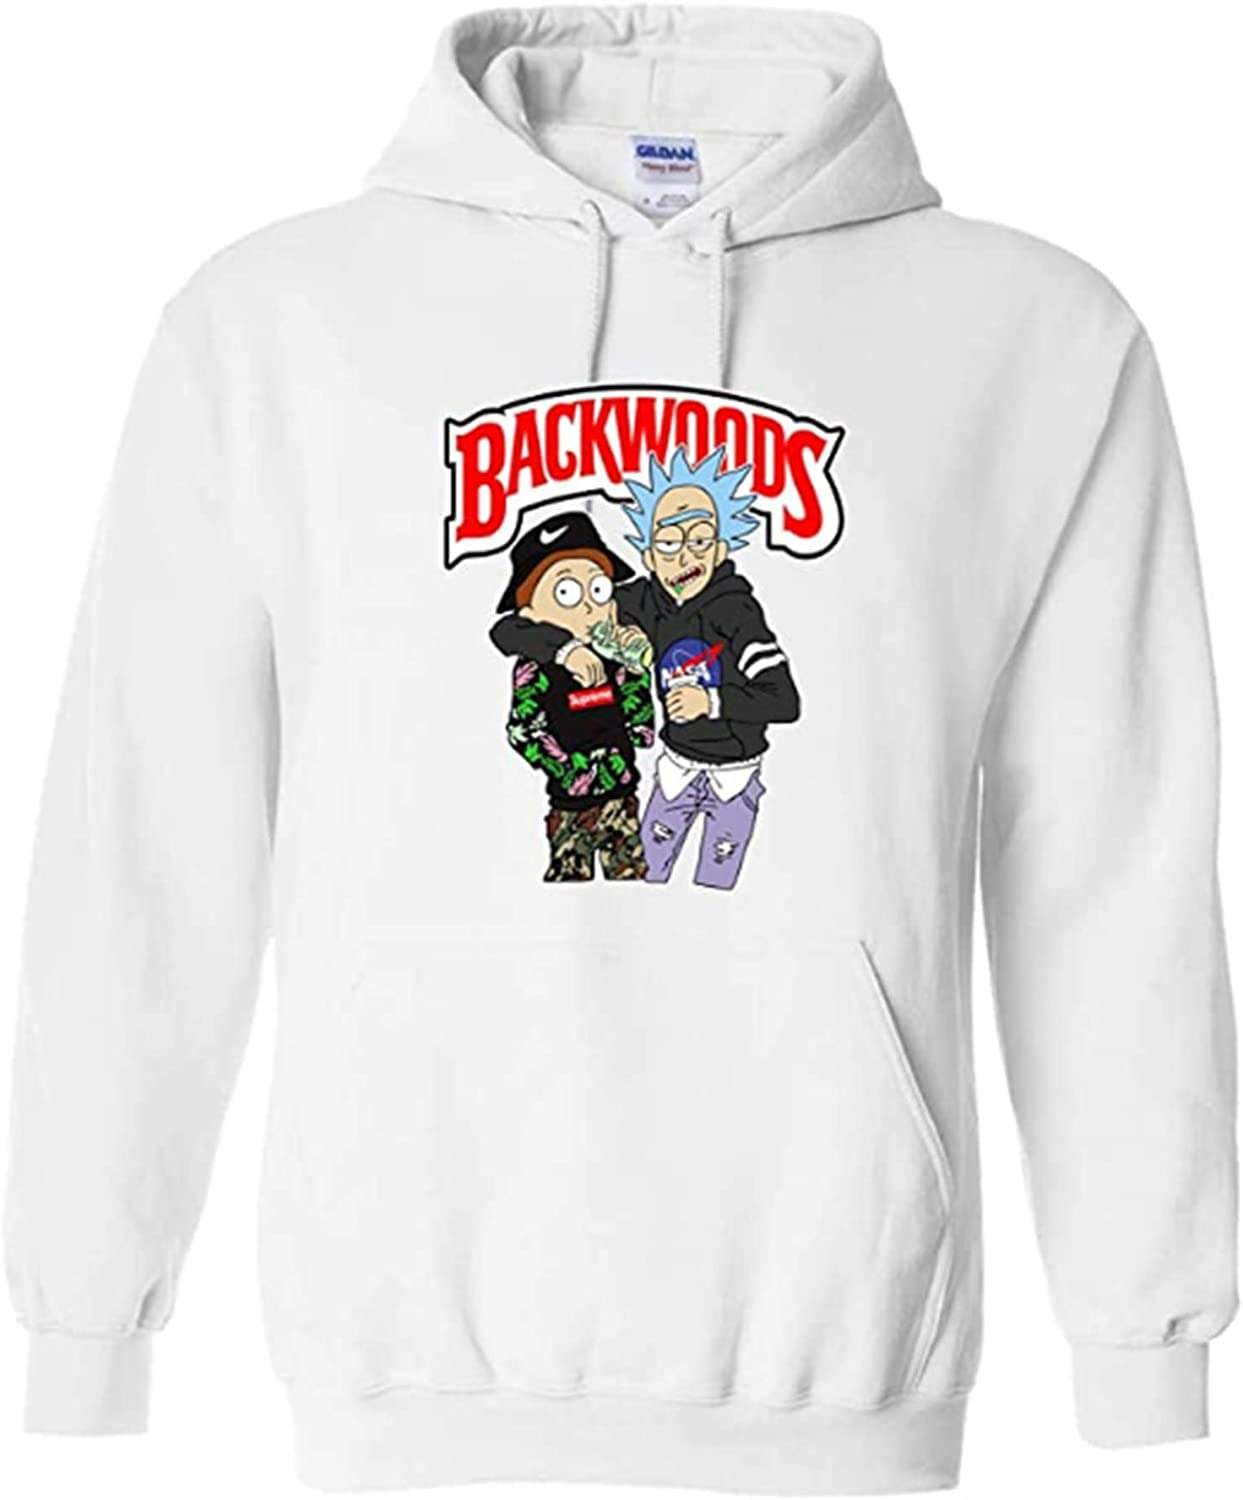 LIPAGI Rick and Morty Backwoods Unisex Hooded Sweater Pullover Hoodie